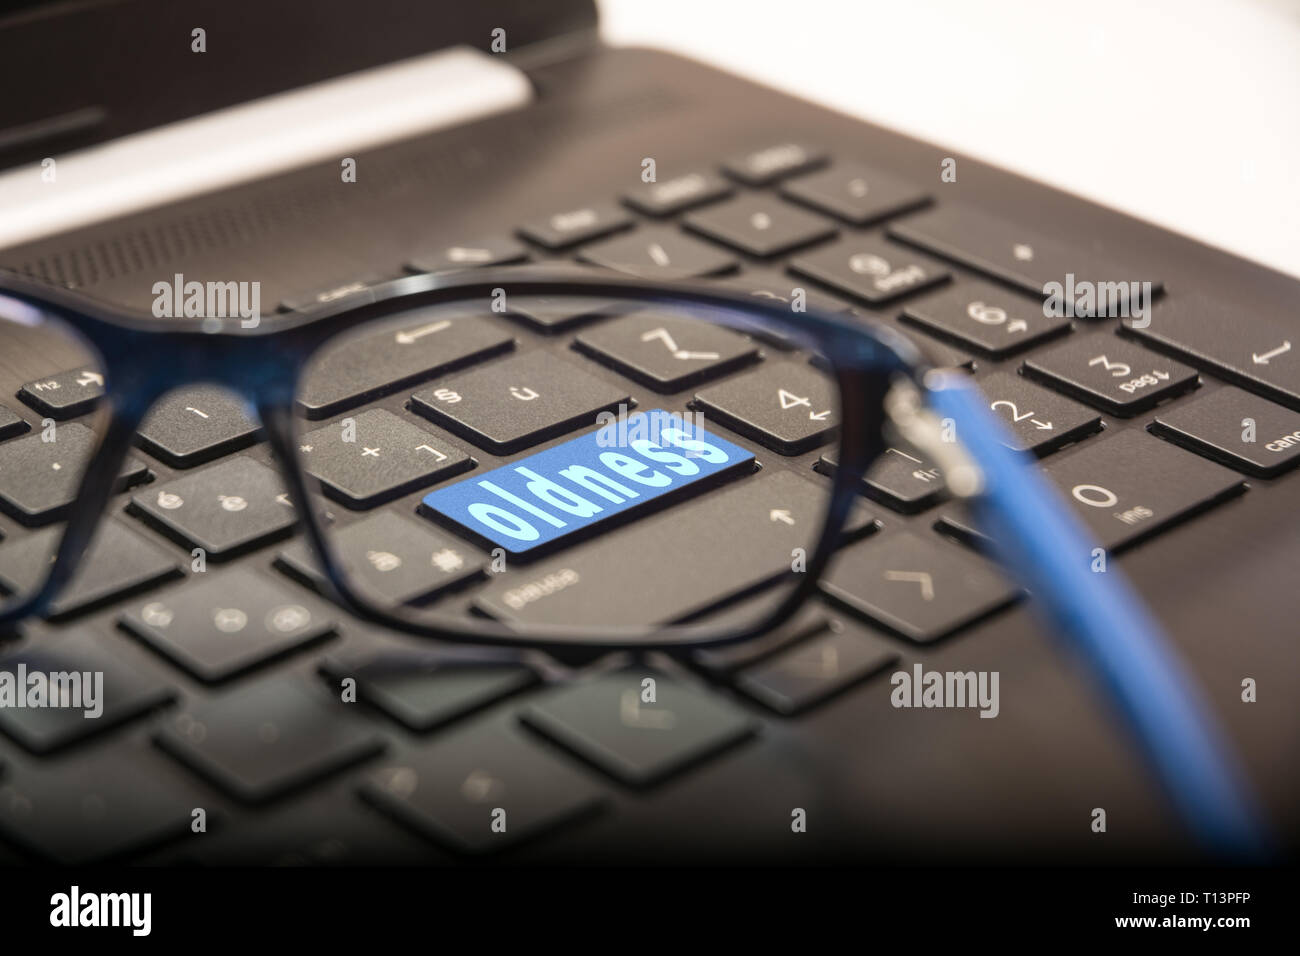 View of the PC keyboard through the lens of the glasses on the button with the written Oldness Stock Photo